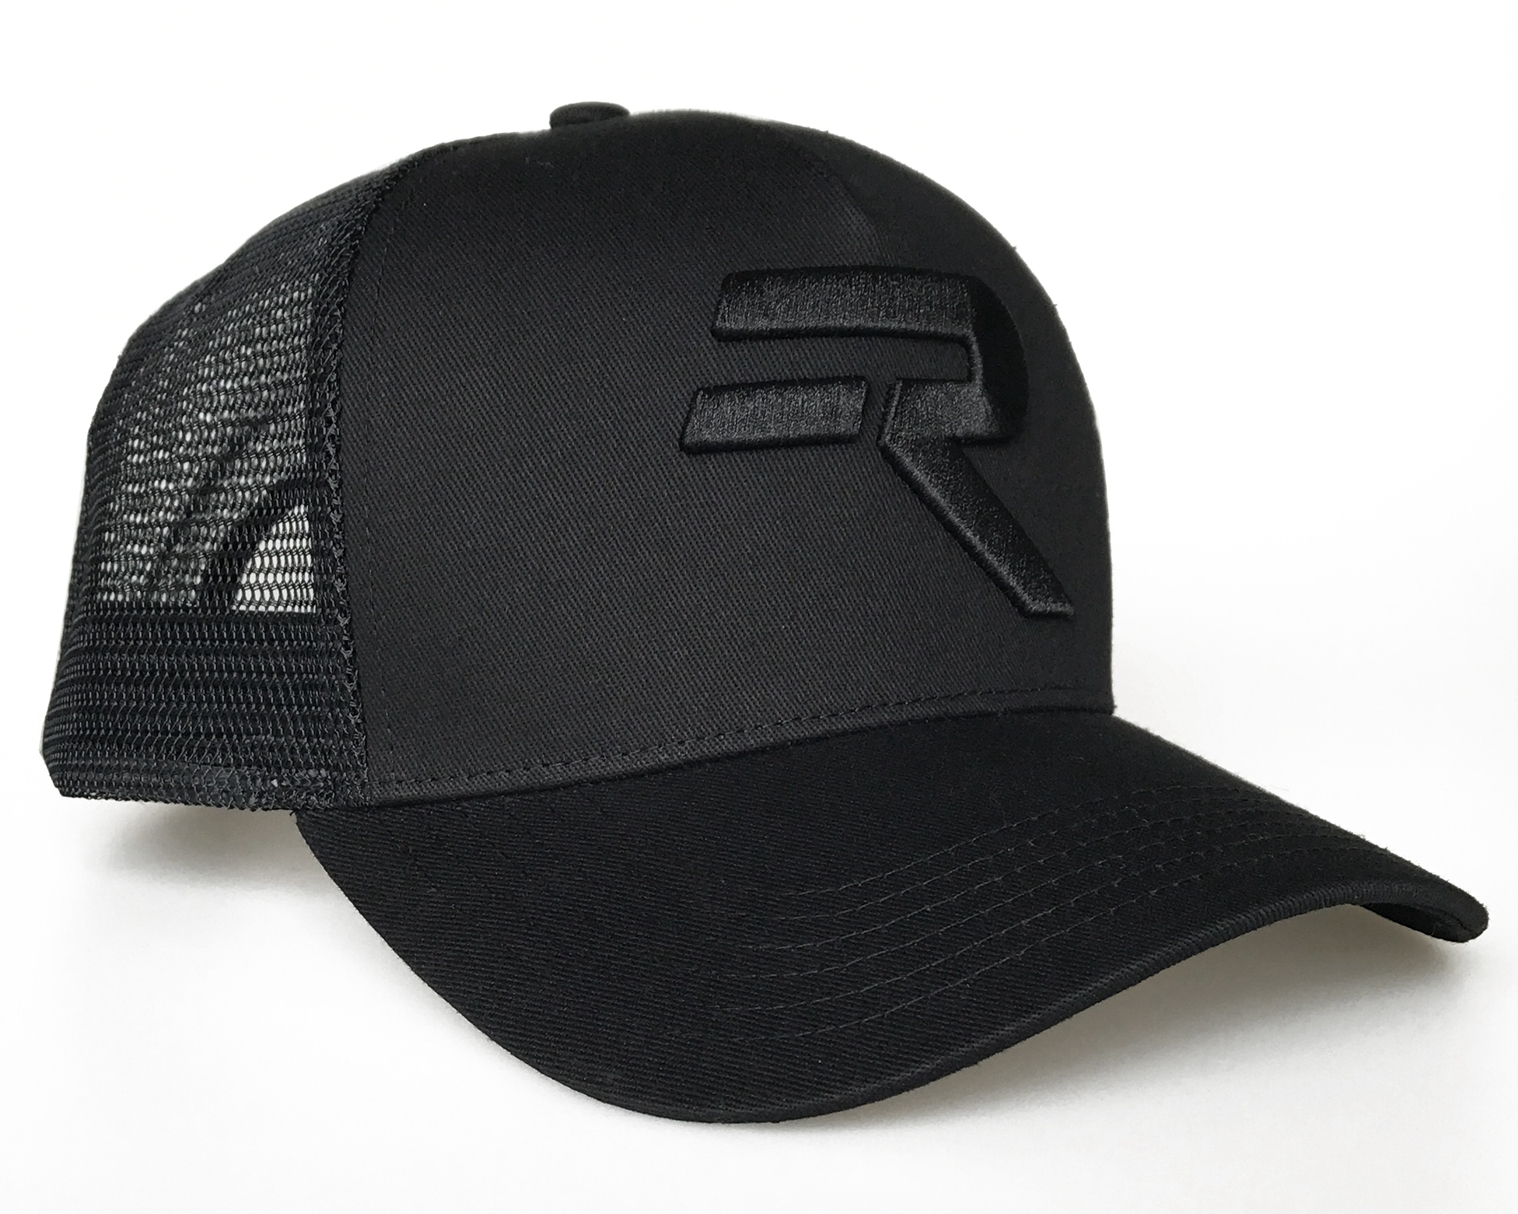 Solid black 5 panel  3D embroidery logo trucker hat